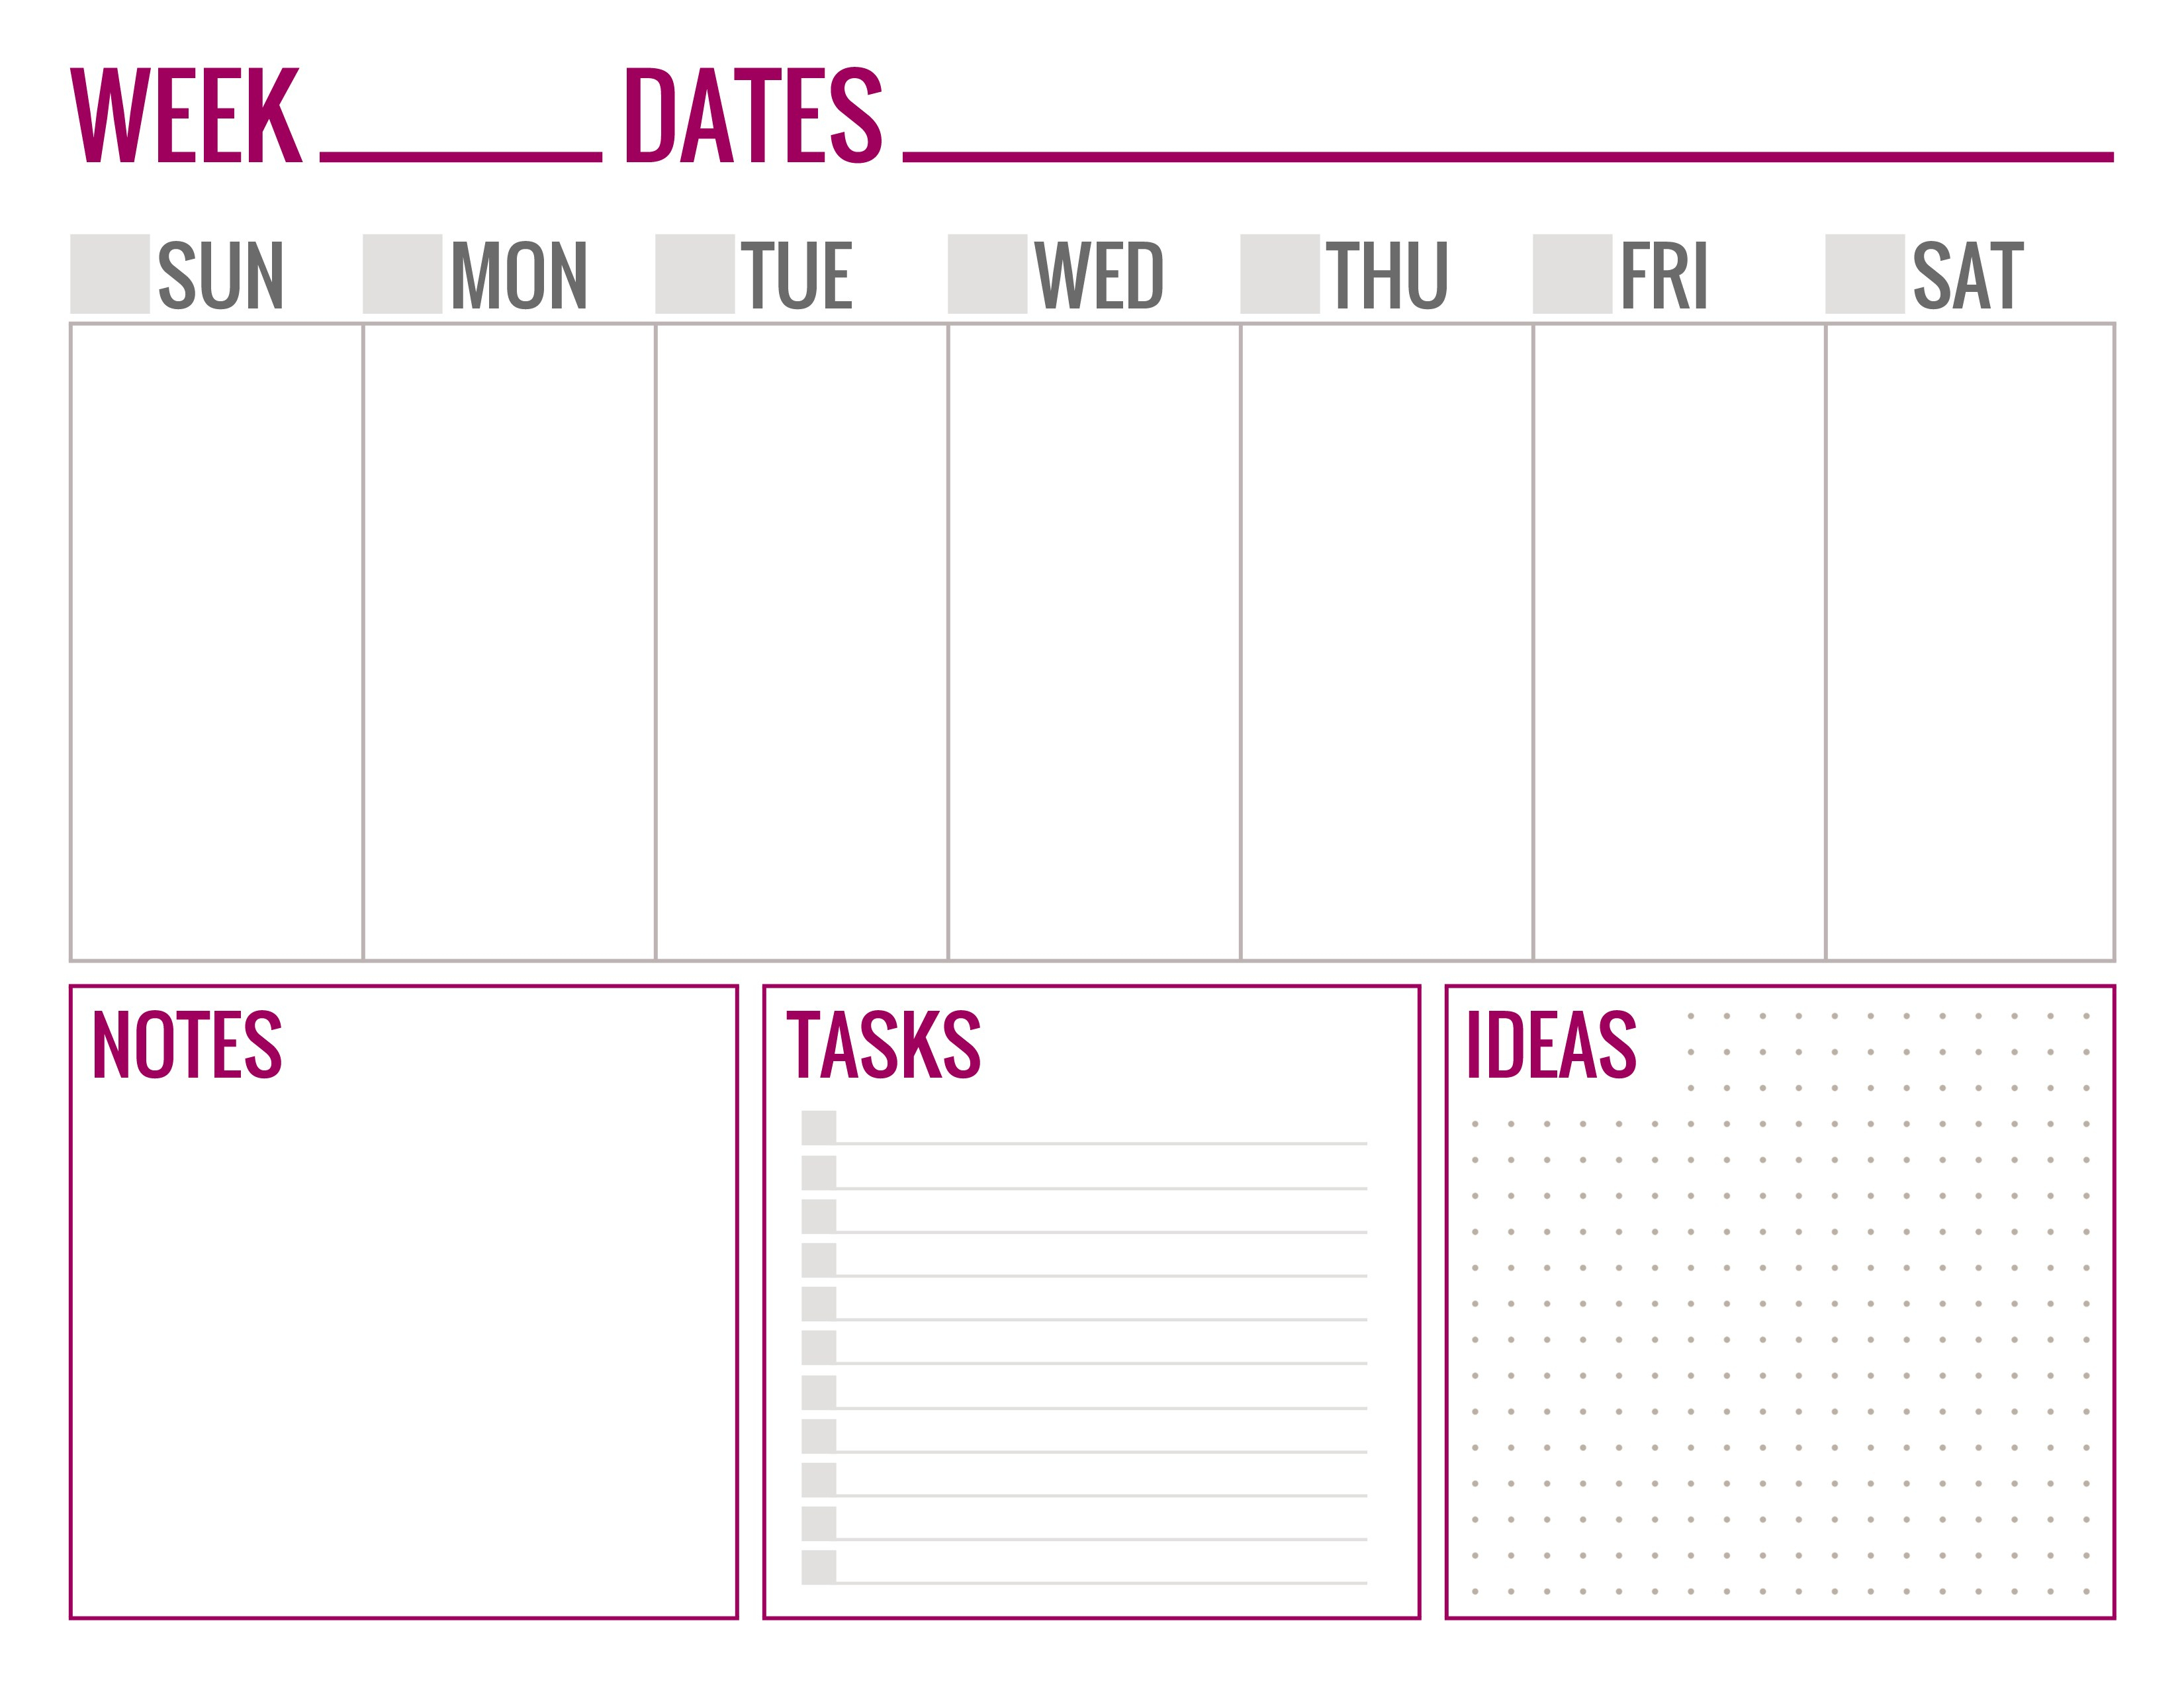 Free Printable Weekly Schedule Page 1 - Paper And Landscapes - Free Printable Weekly Schedule